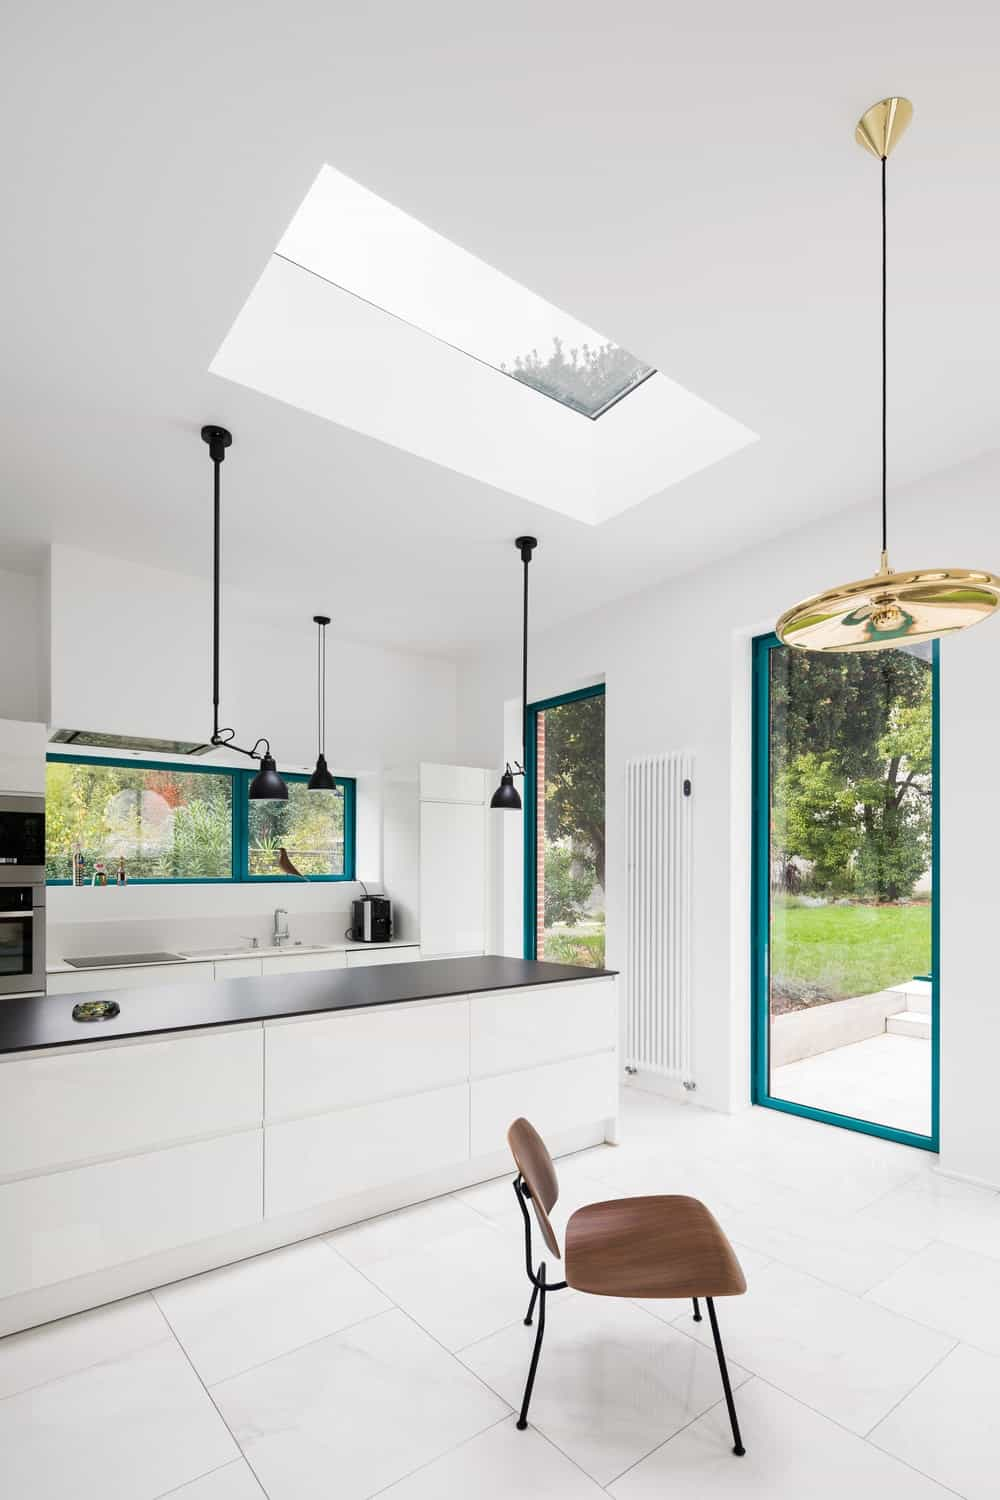 This is a simple and brilliant modern kitchen with a long and narrow design. It has a long white kitchen island contrasted by the black matte countertop toppe diwth a bright ceiling that has a skylight.